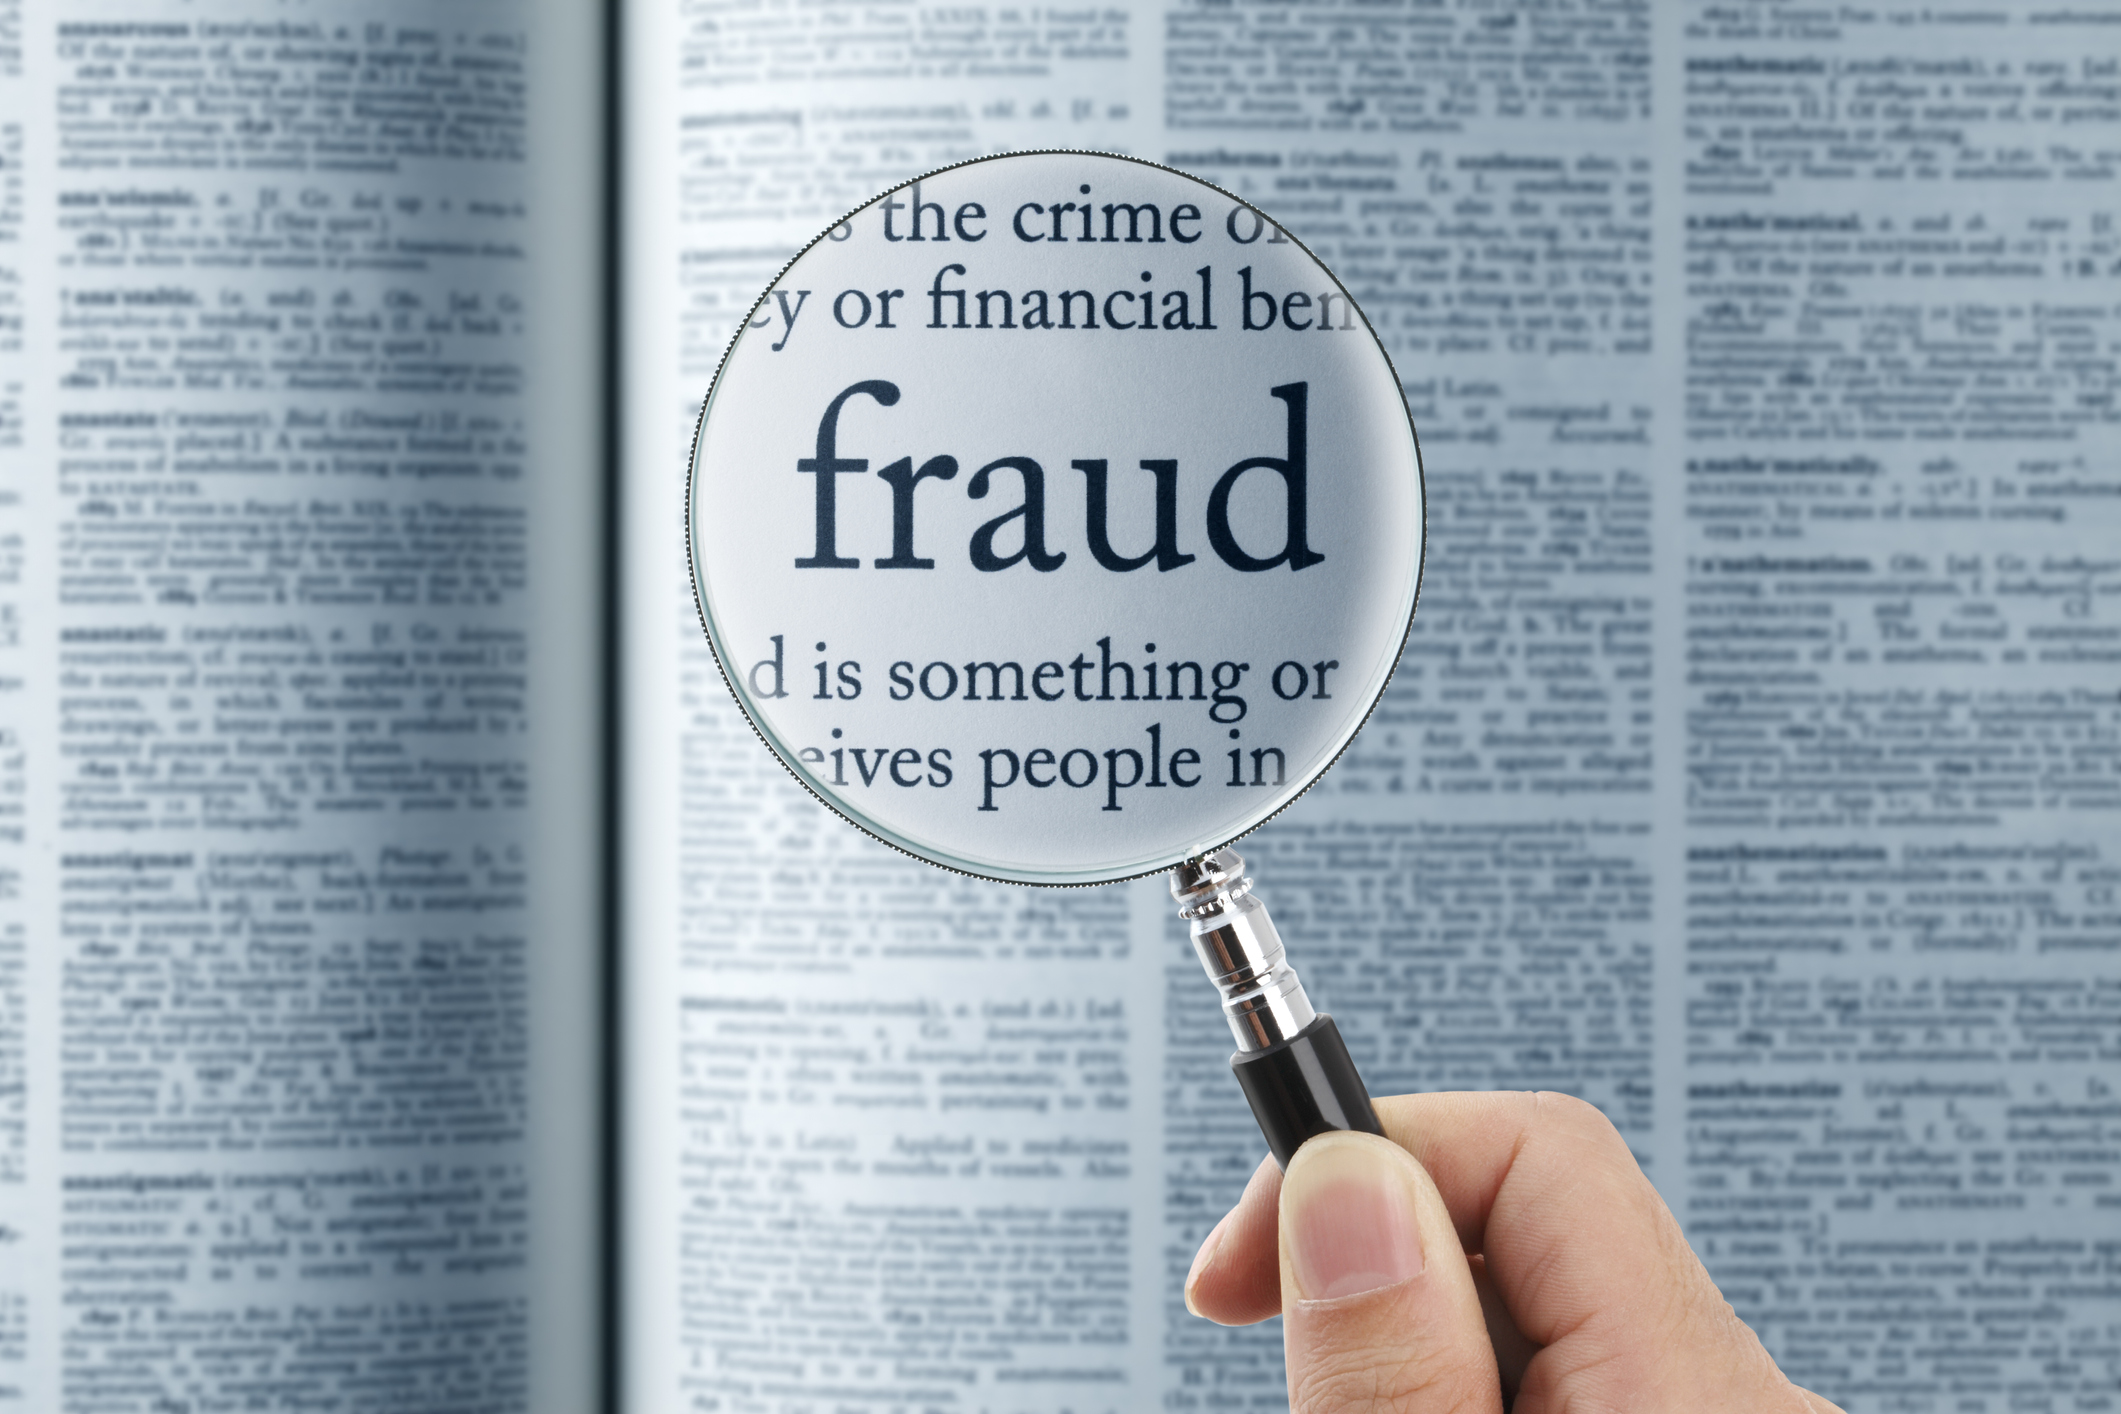 Bank Mandate Fraud: Explaining the risks to individuals and businesses